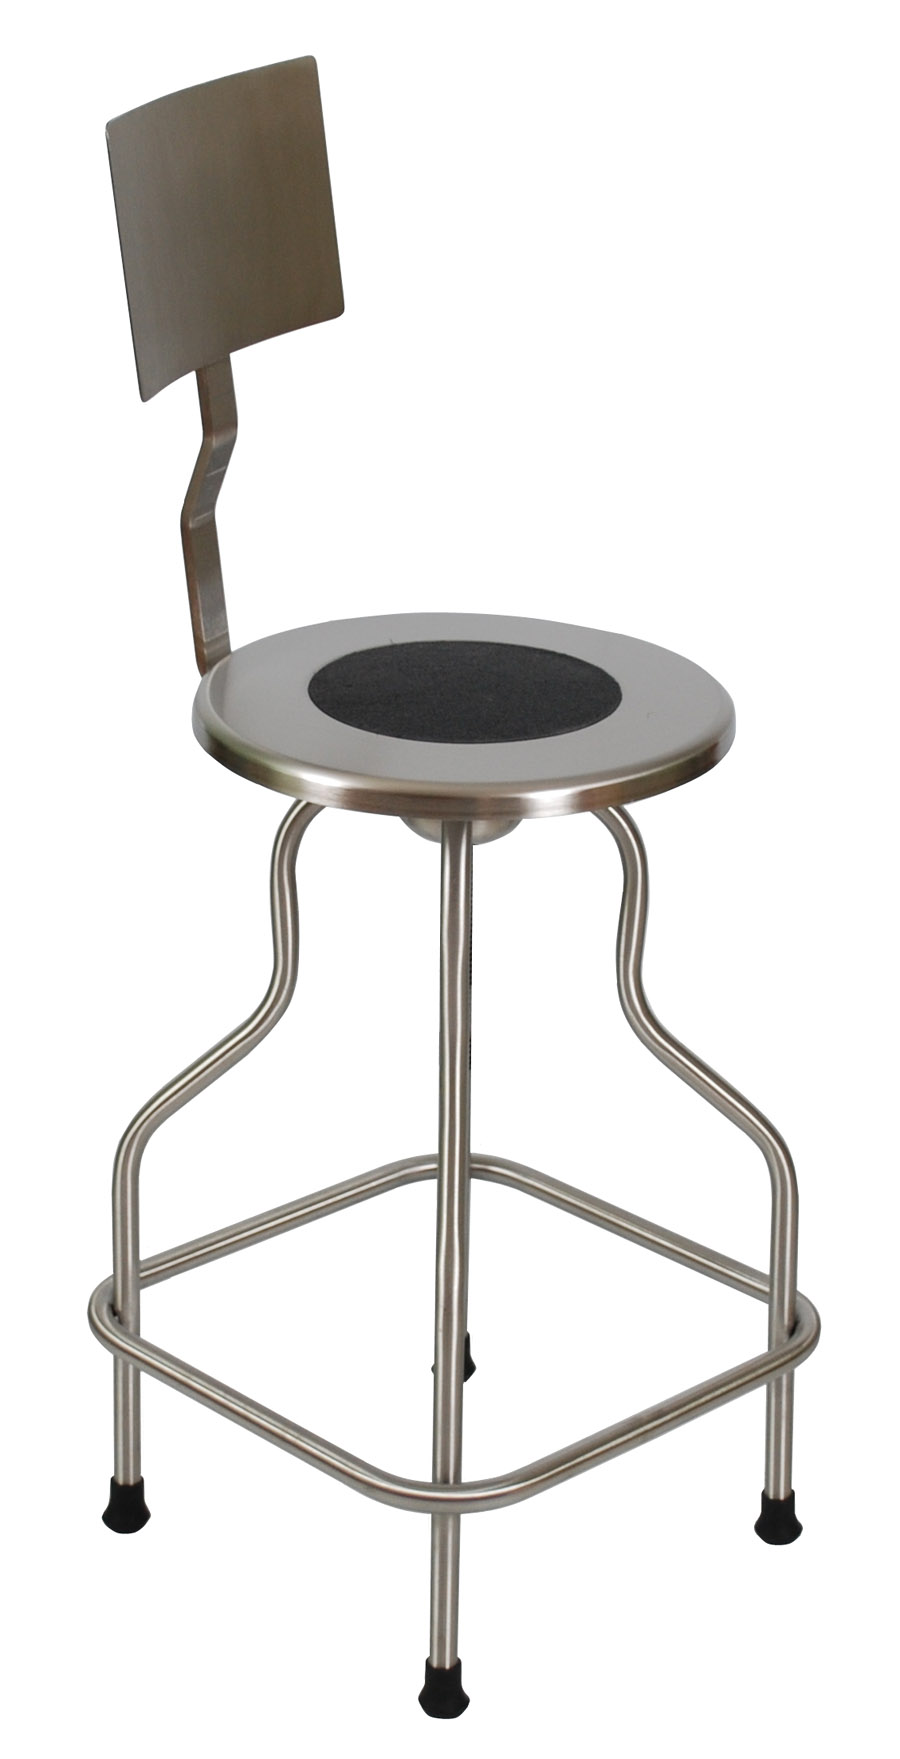 Umf Ss6700 Stainless Steel Revolving Stool With Back